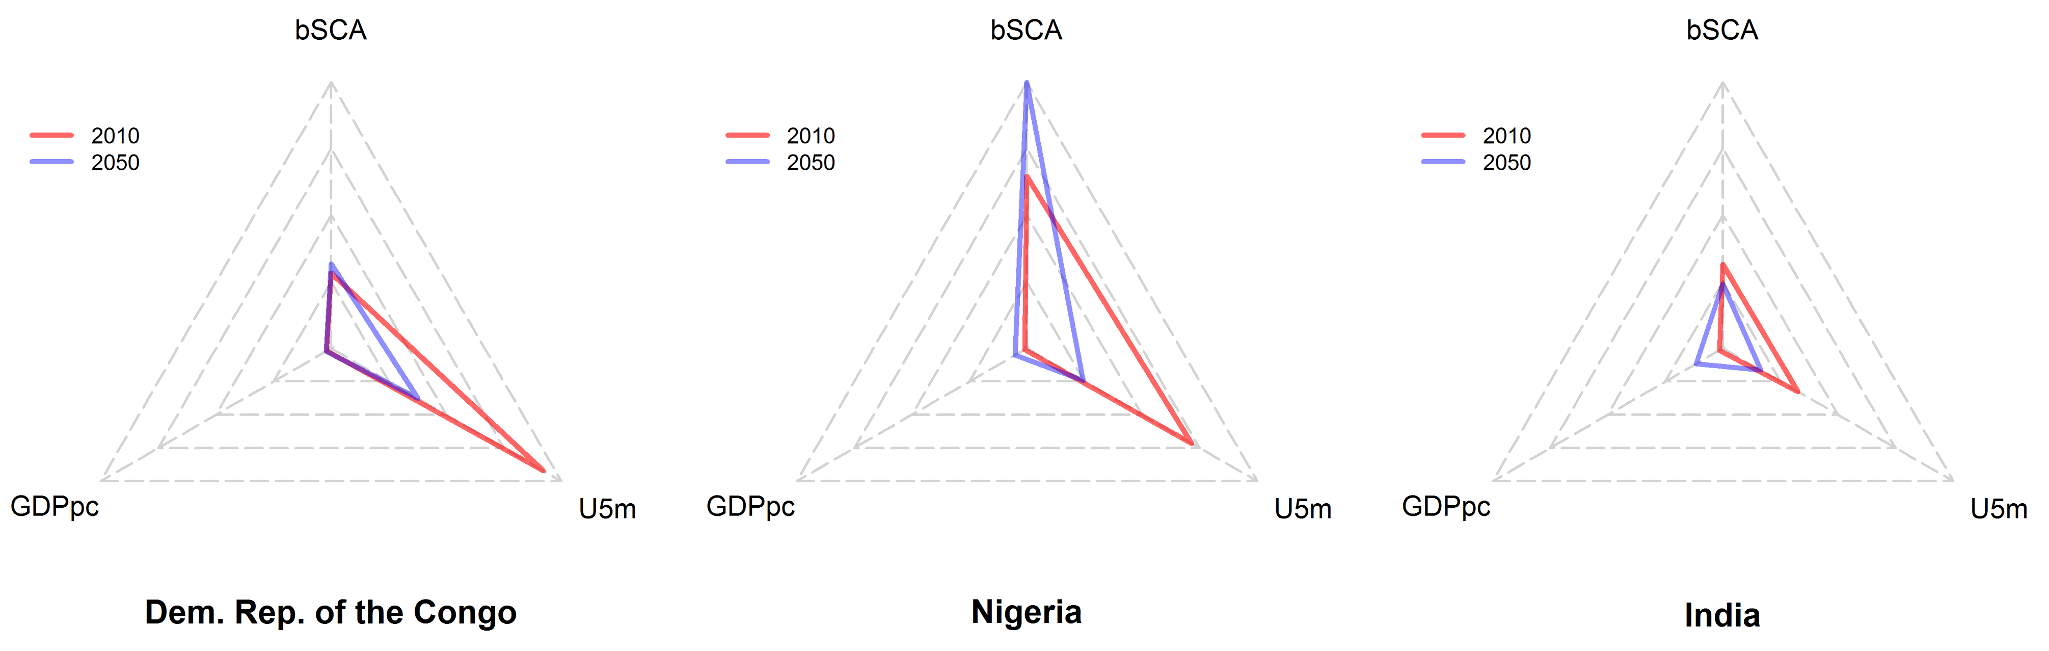 Radar plots of newborns with SCA, gross domestic product, and under-five mortality for the DRC, Nigeria, and India.